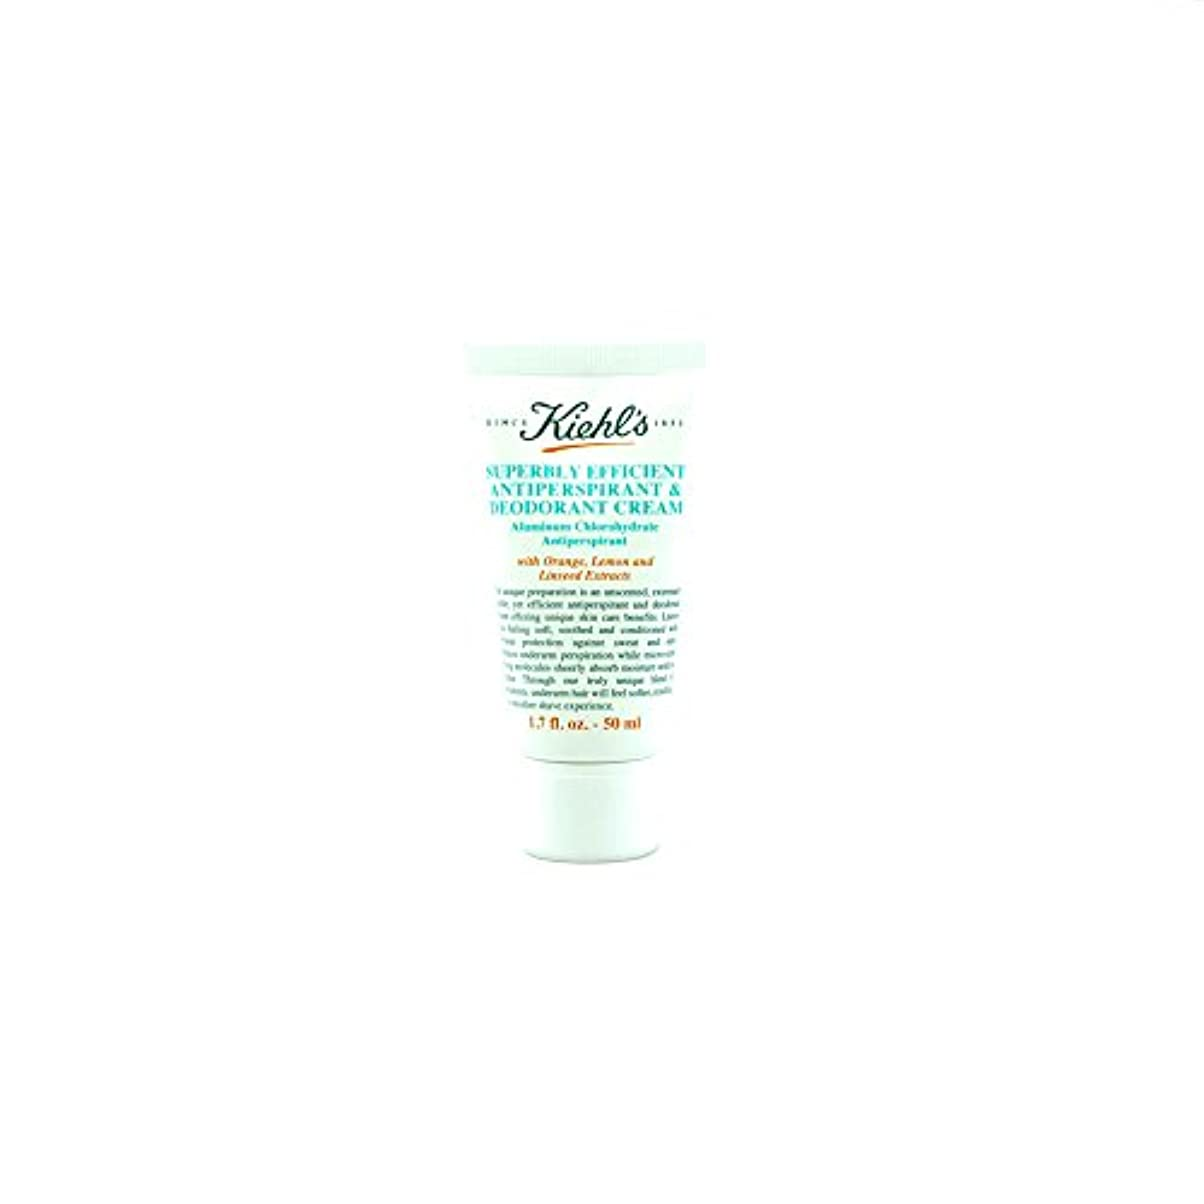 平らな間接的トライアスリートKiehl's Superbly Efficient Anti Perspirant & Deodorant Cream - Small Size 1.7oz (50ml)